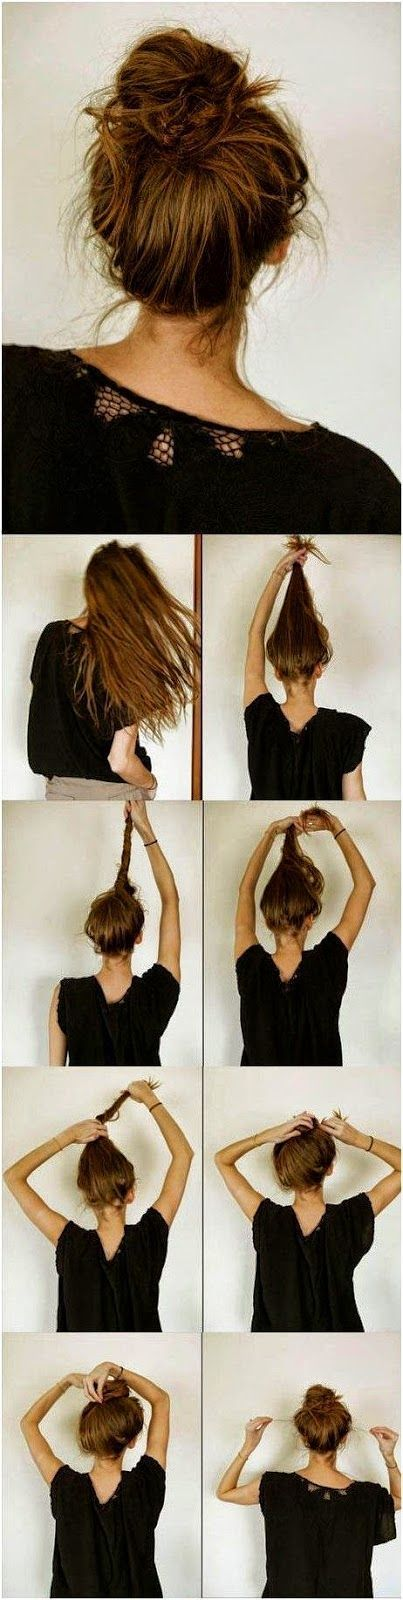 nice Hair Style: 5 Easy Messy Buns For Long Hair Tutorial by http://www.dana-hairstyles.xyz/hair-tutorials/hair-style-5-easy-messy-buns-for-long-hair-tutorial/